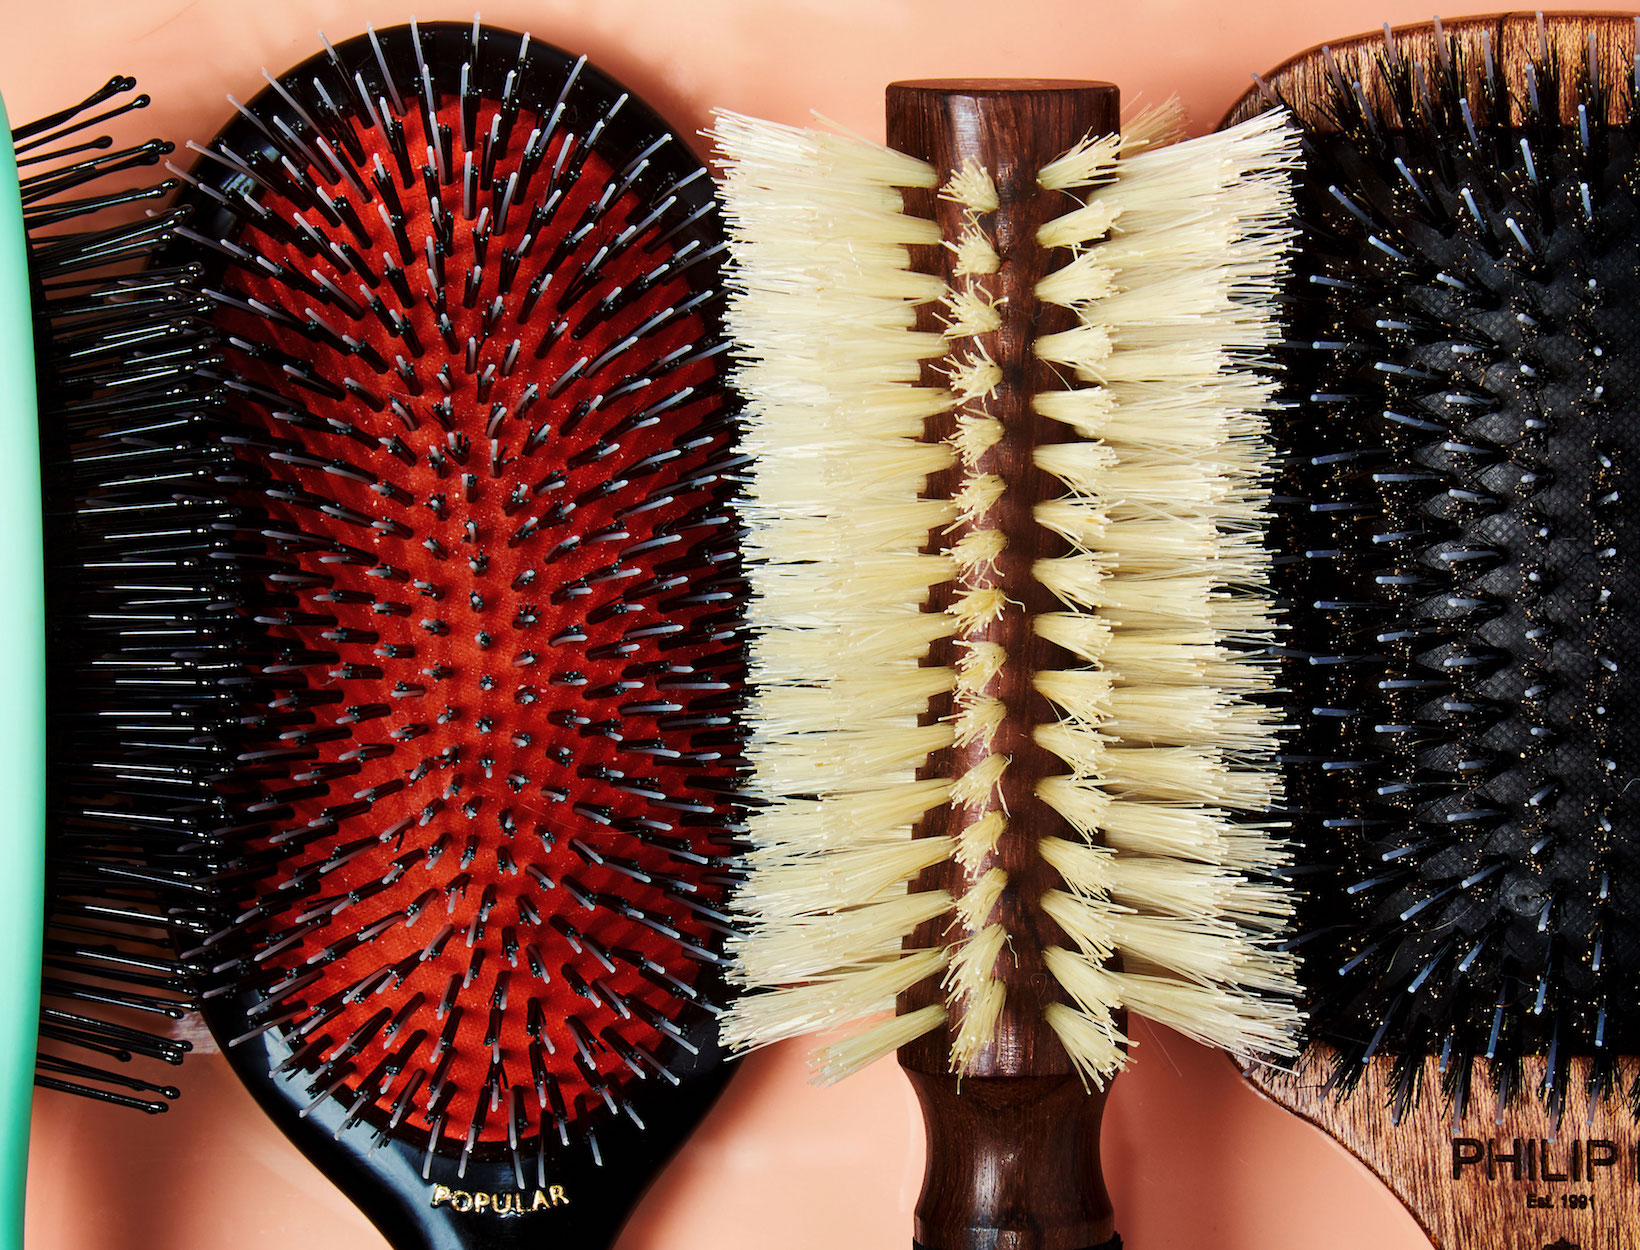 Best Hairbrushes for Shiny, Healthy Hair